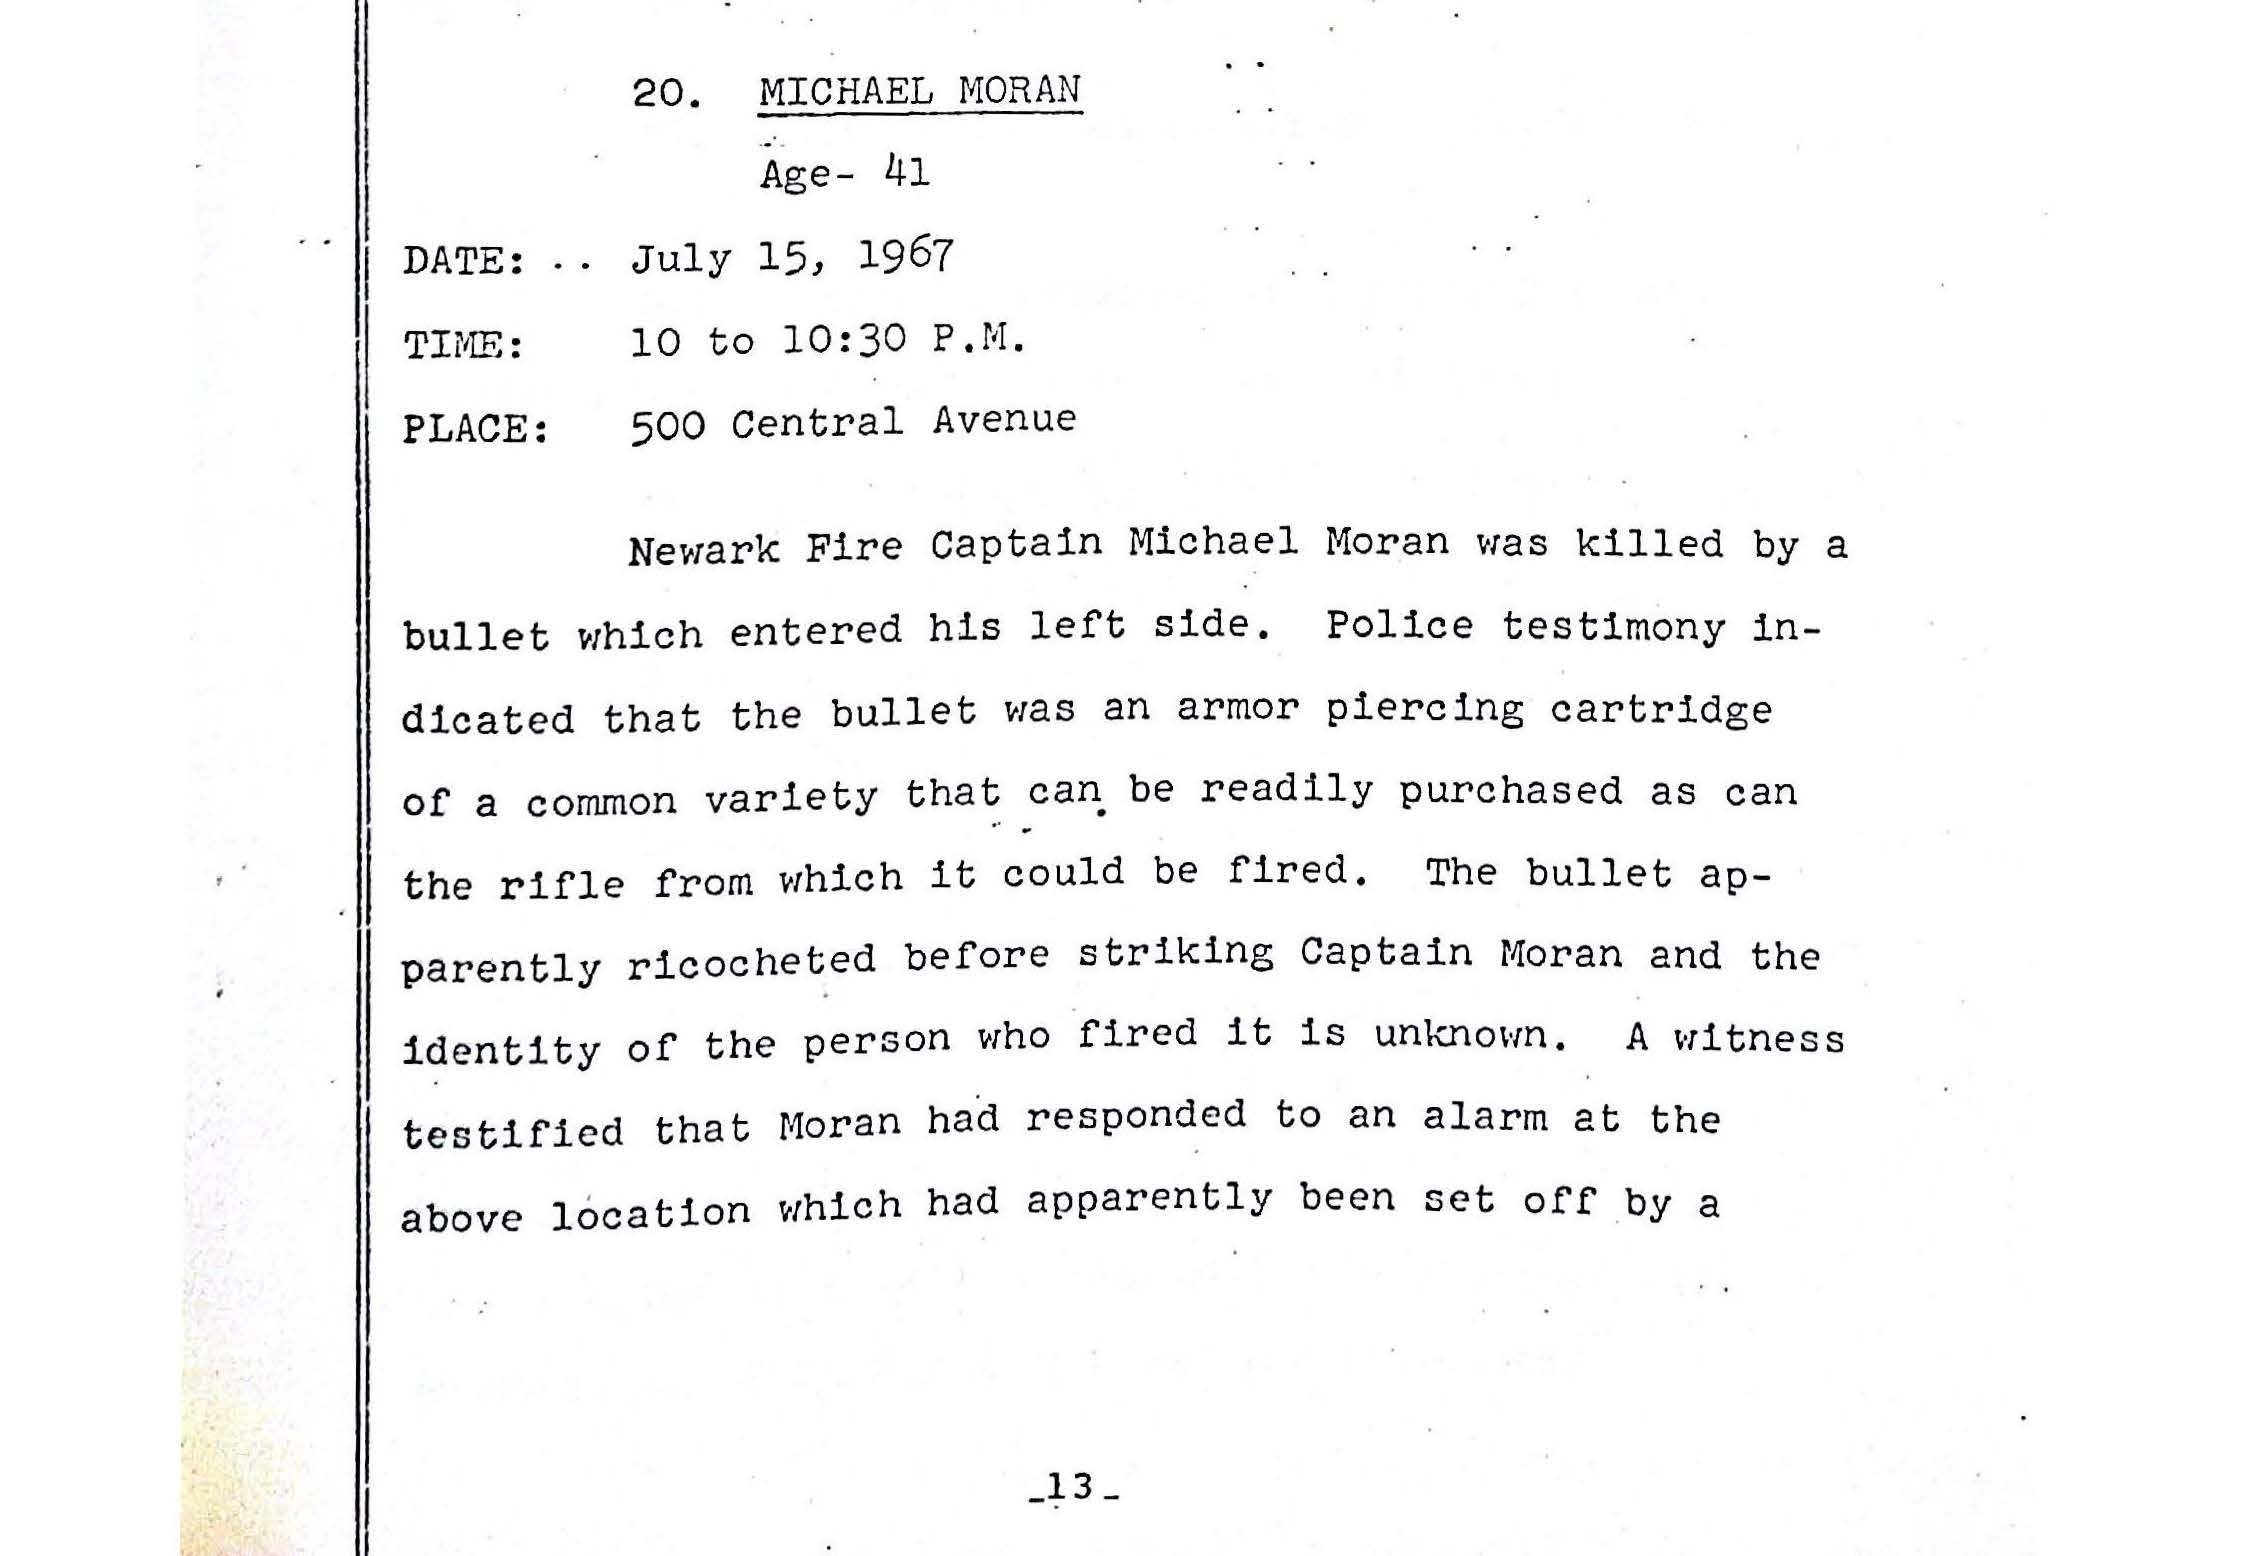 Grand Jury Report on Death of Michael Moran